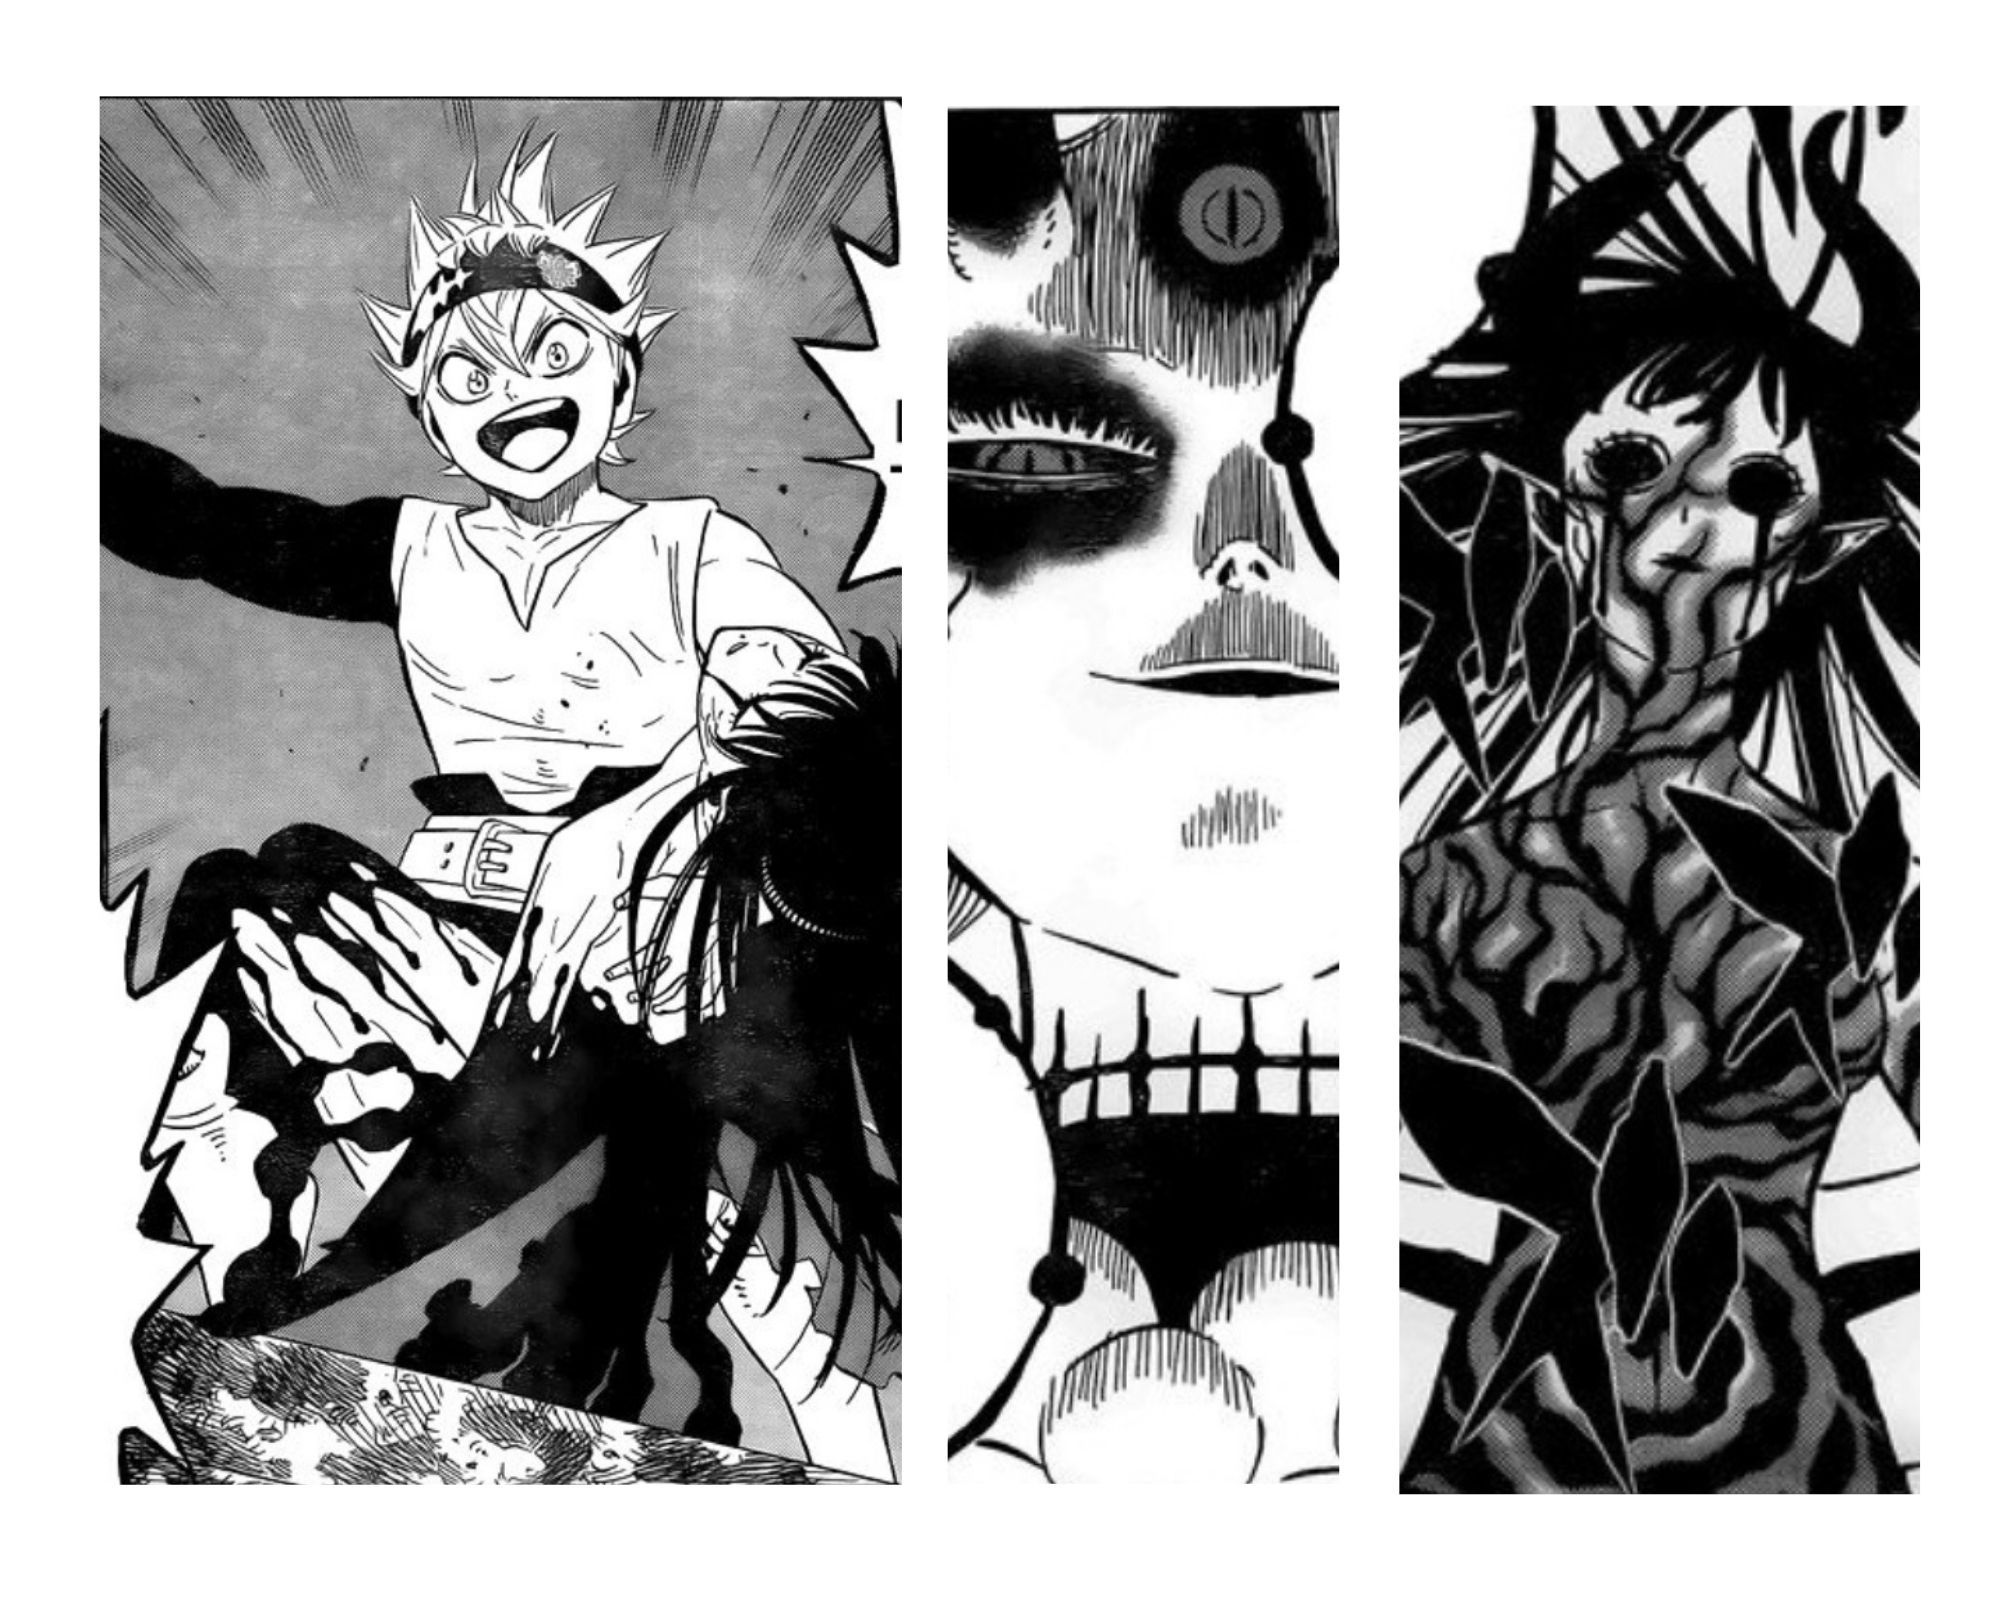 Black Clover Chapter 301 Release Date, Recap, And Where To Watch